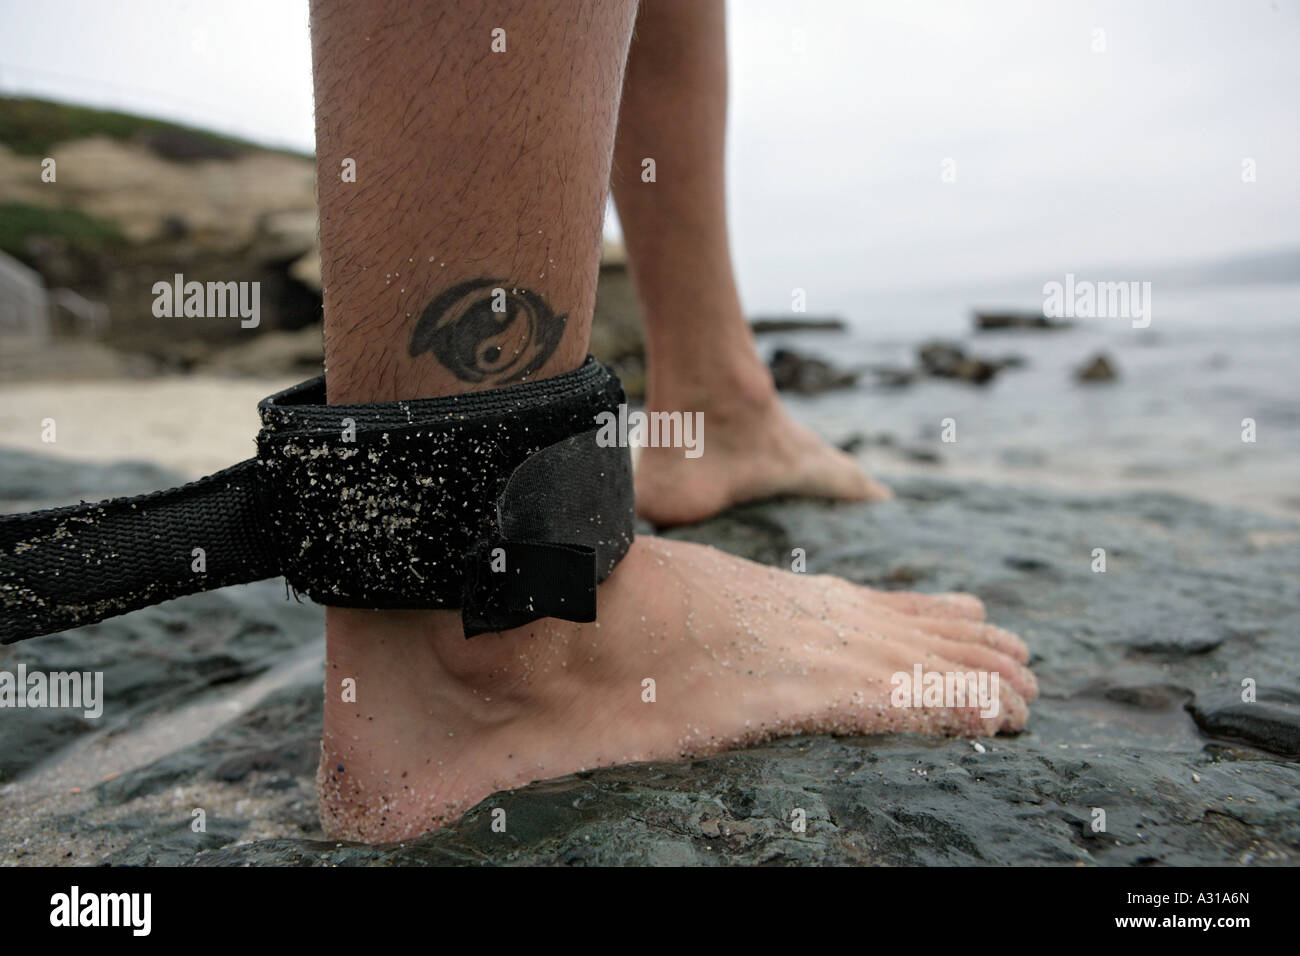 Safety strap on surfer's leg - Stock Image